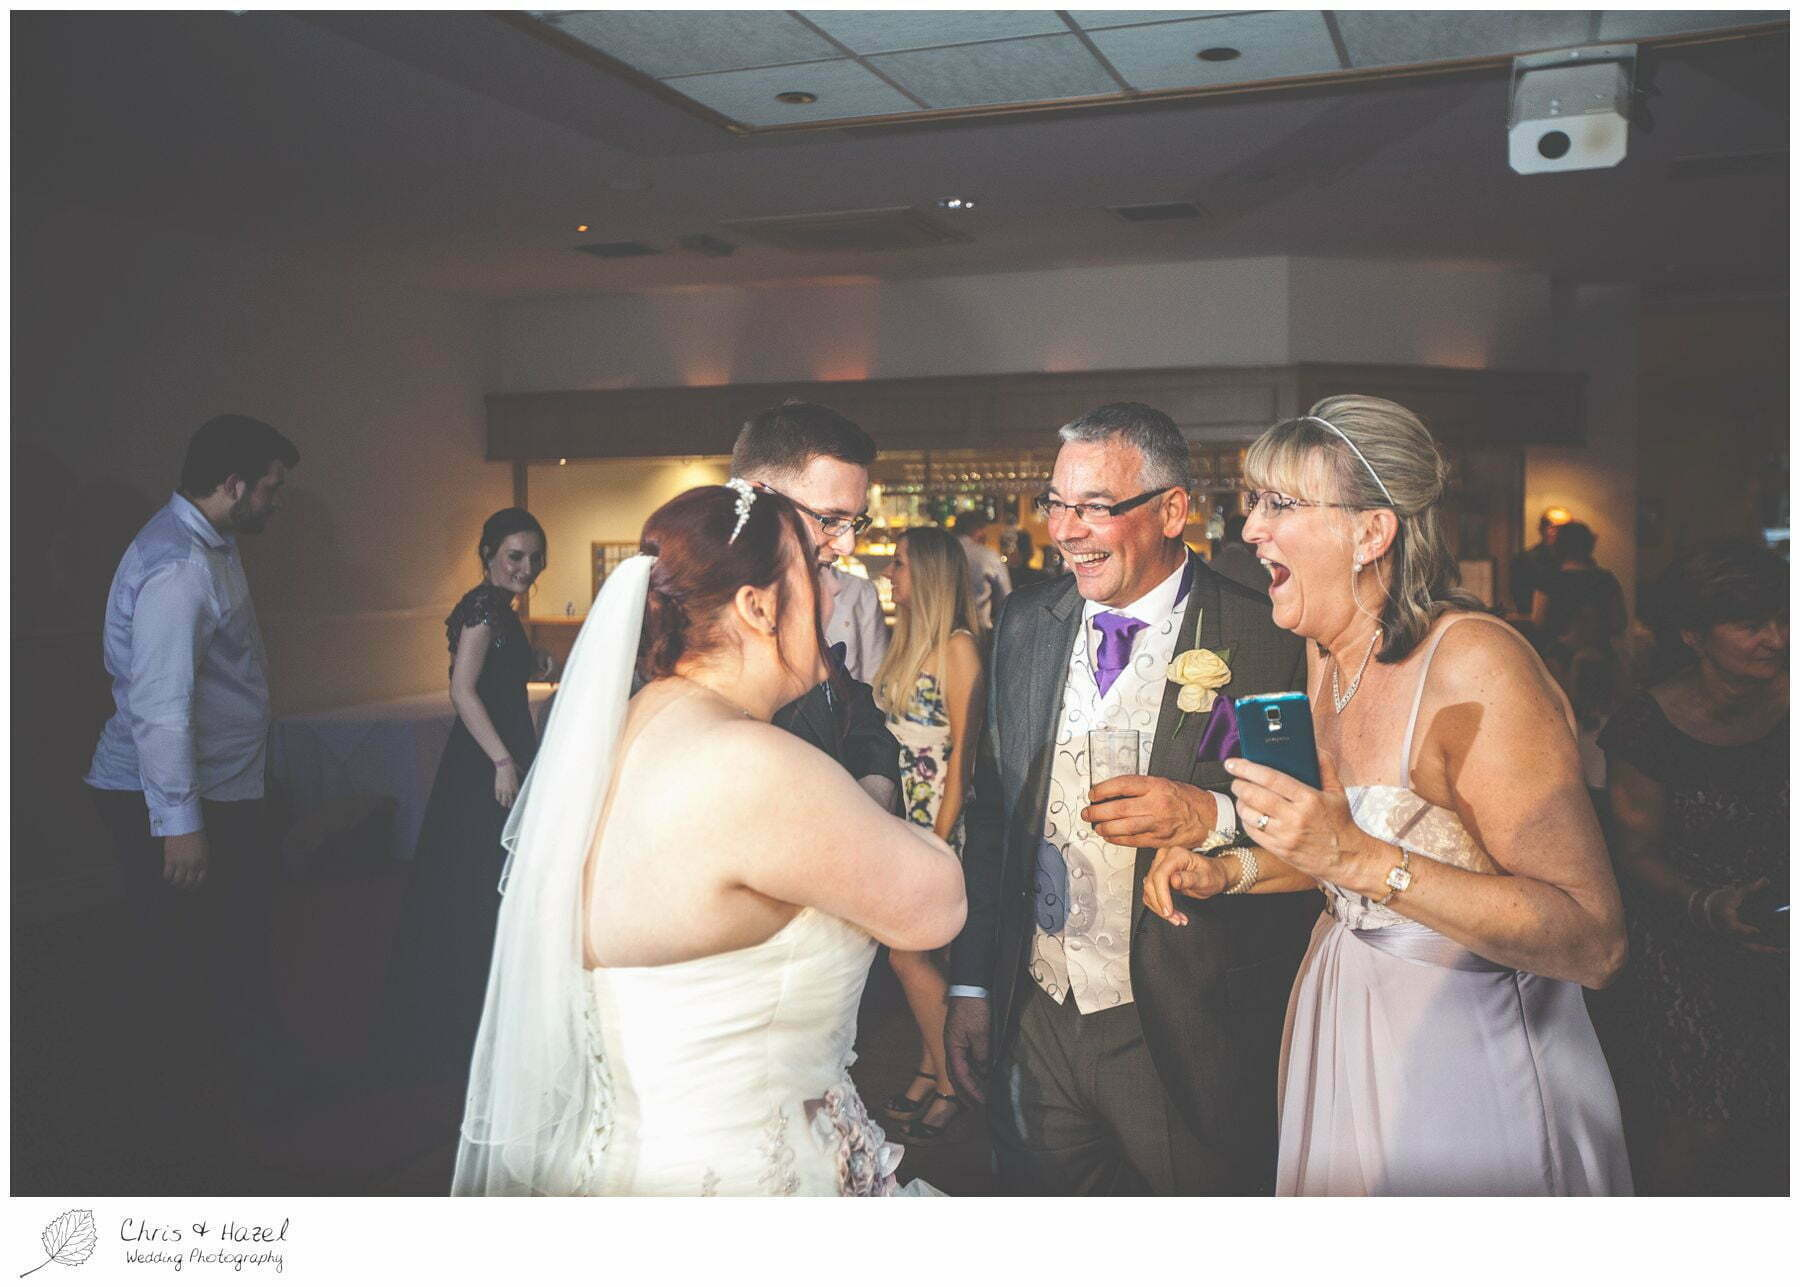 wedding guests dancing, bagden hall wedding venue, documentary wedding photography, denny dale, huddersfield, Wedding Photographer, Bagden Hall, Wedding Photography, Chris and Hazel Wedding Photography, Alex tomenson, Vicky hunt